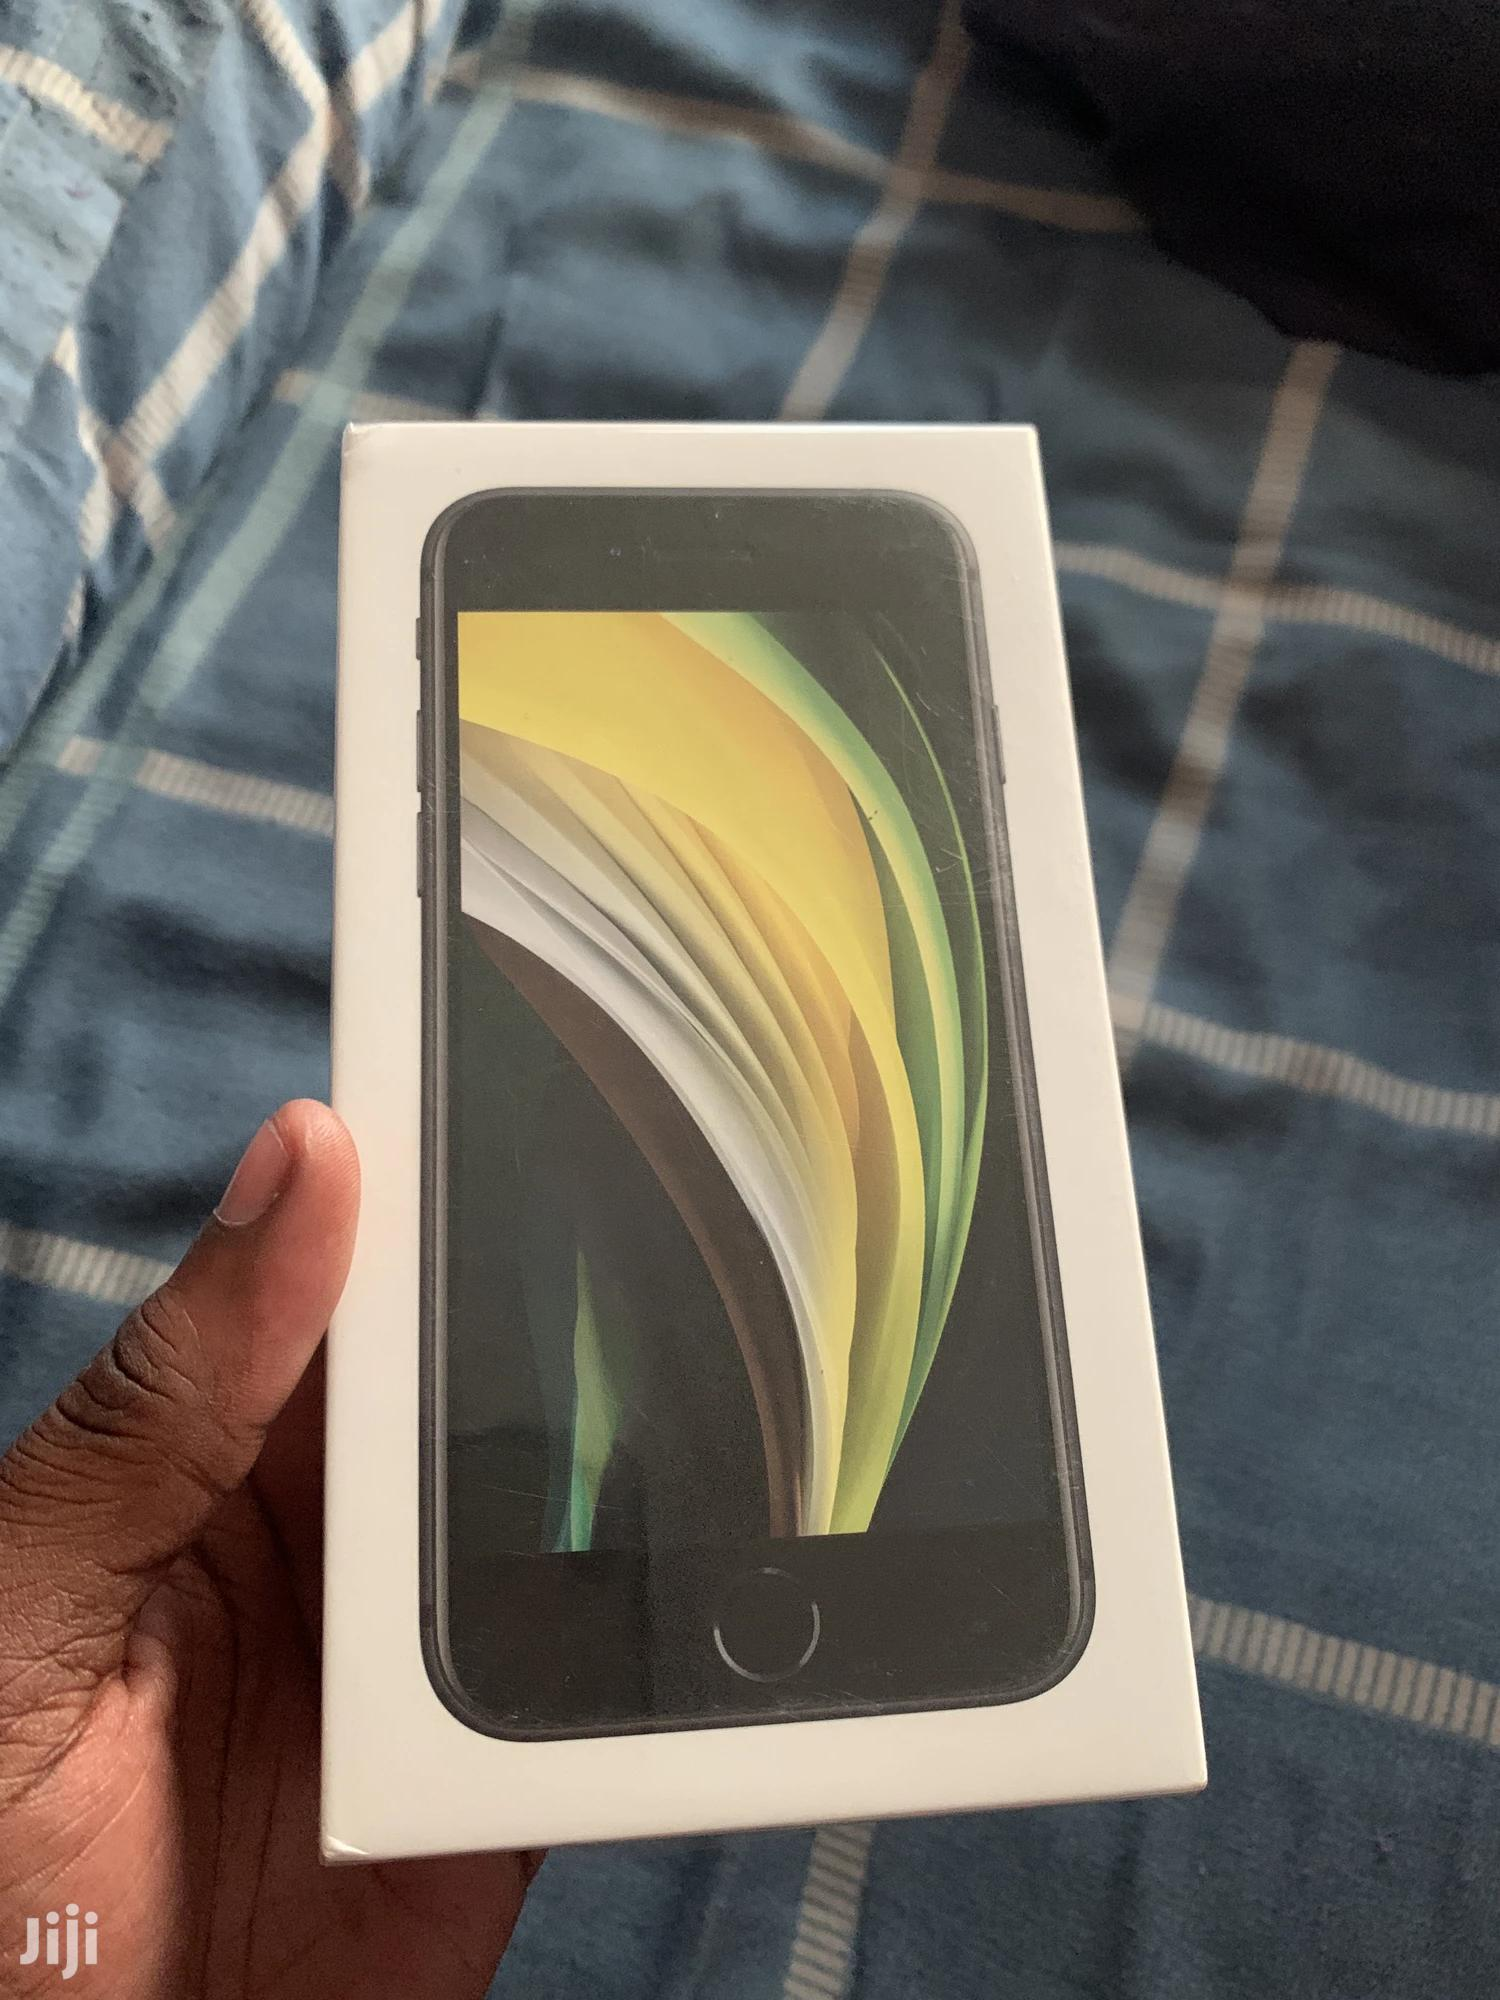 New Apple iPhone SE (2020) 128 GB Black